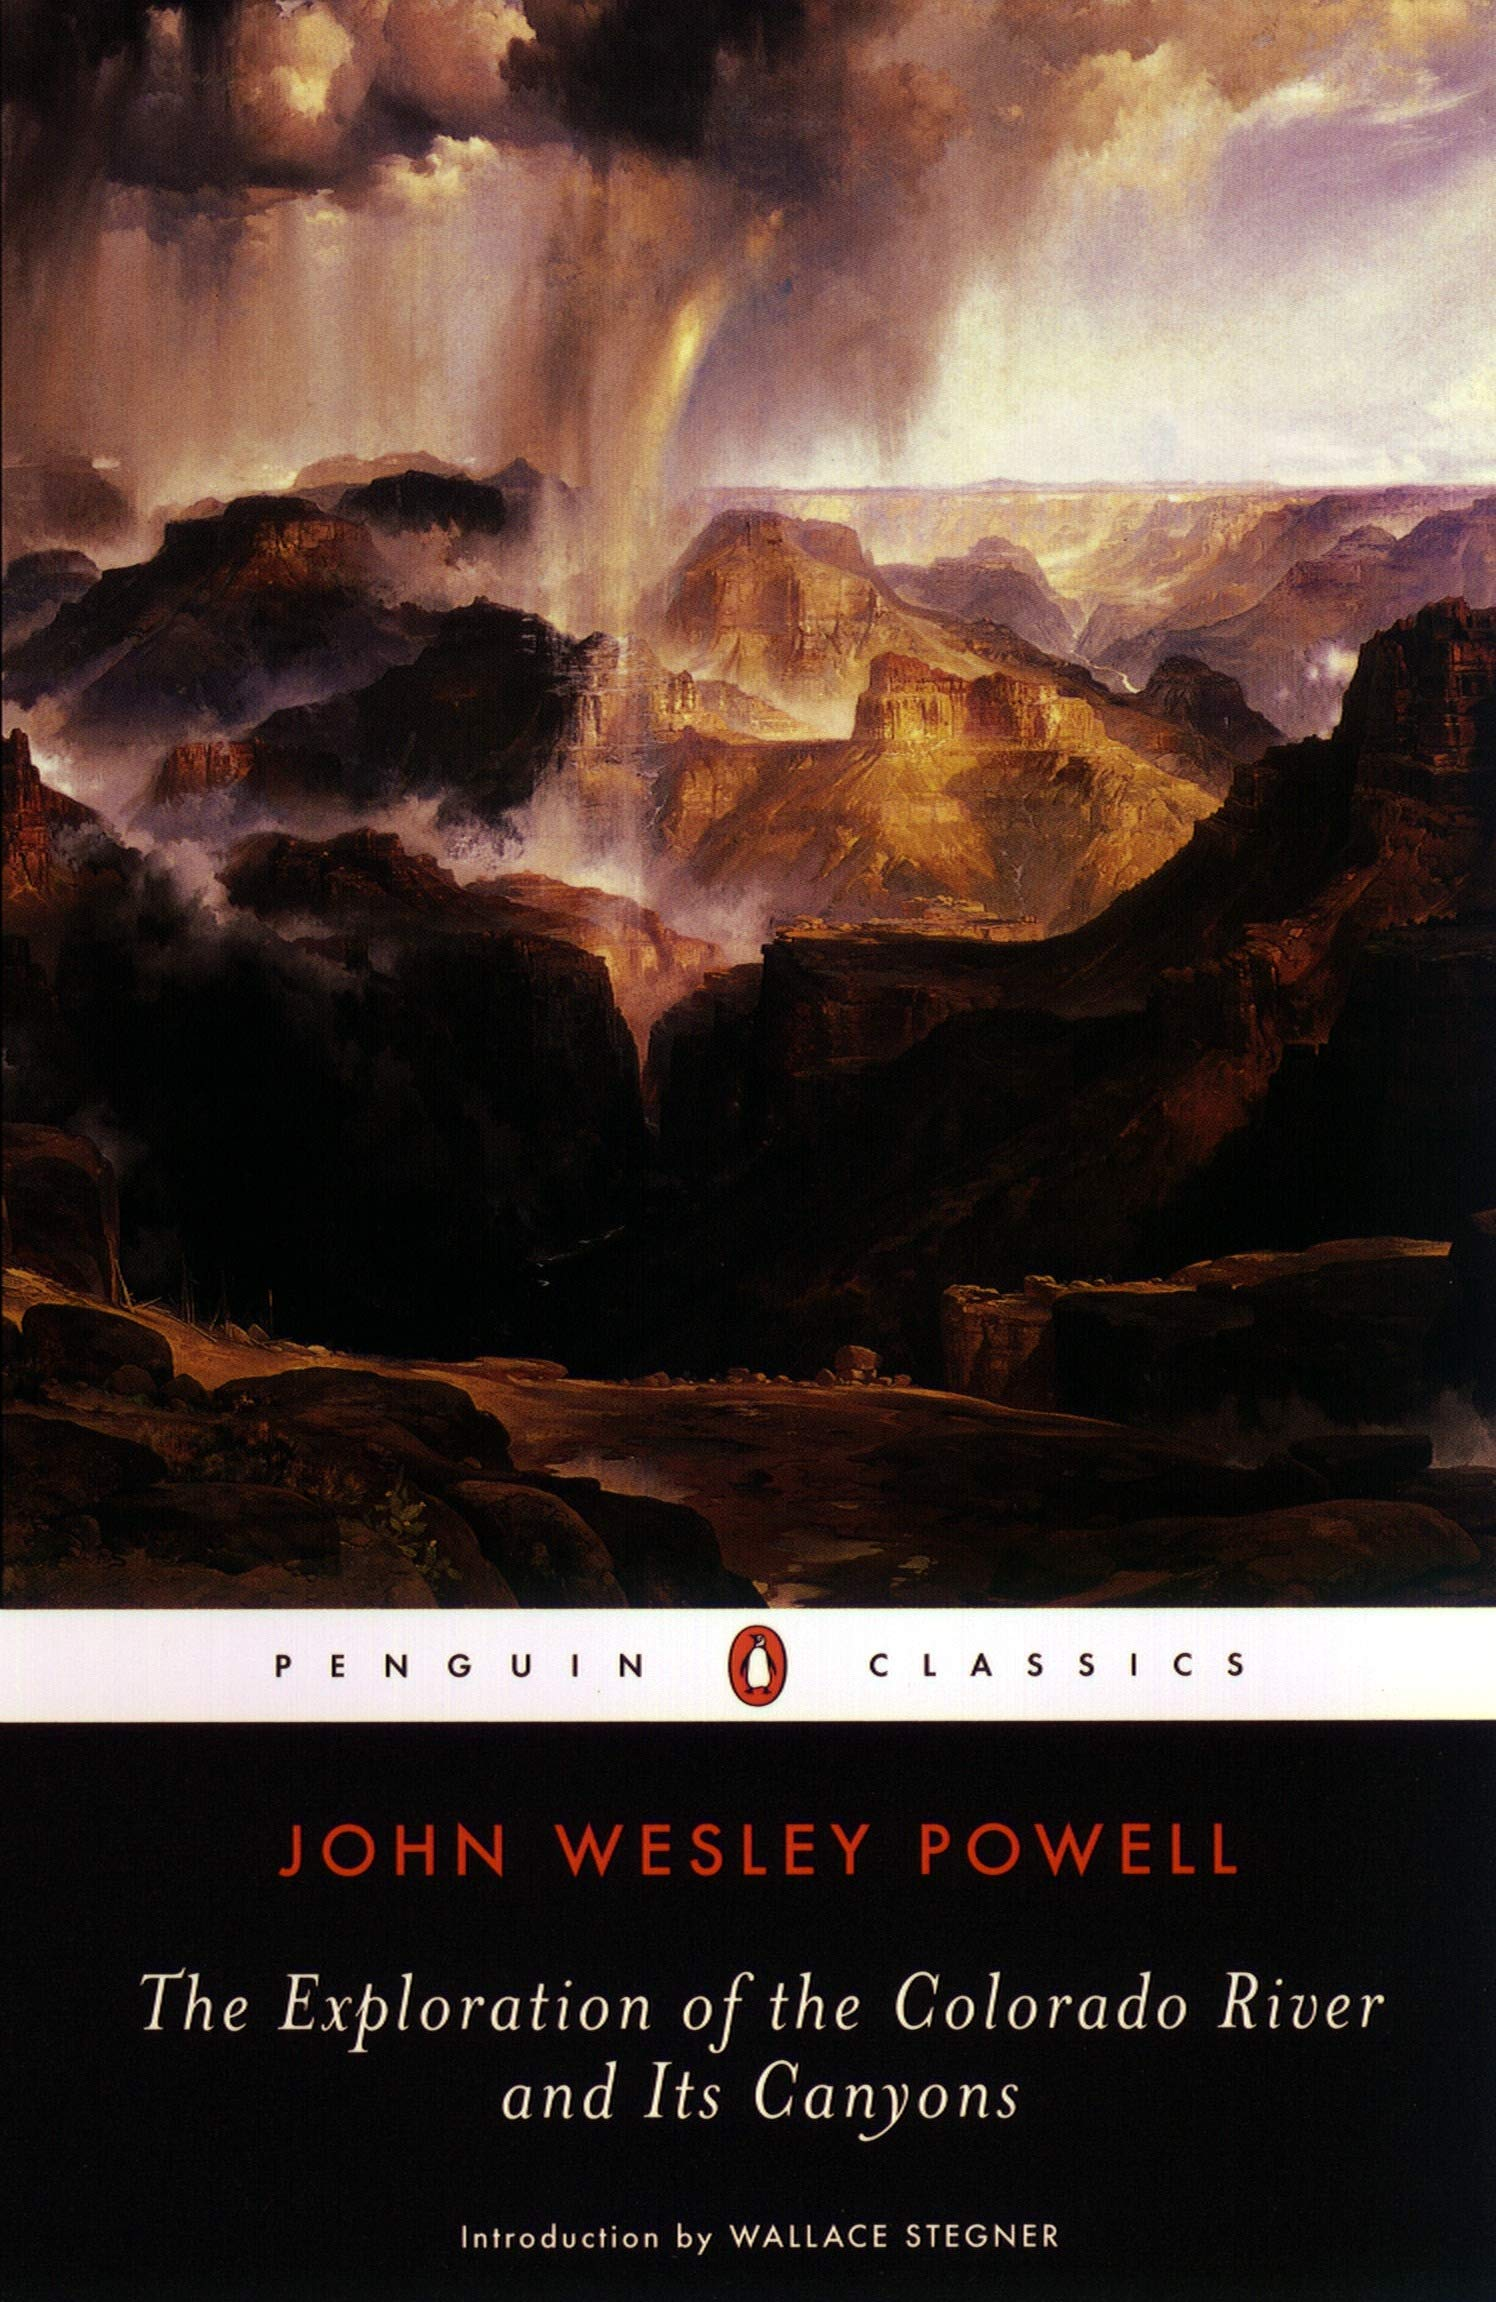 Download The Exploration of the Colorado River and Its Canyons (Penguin Classics)